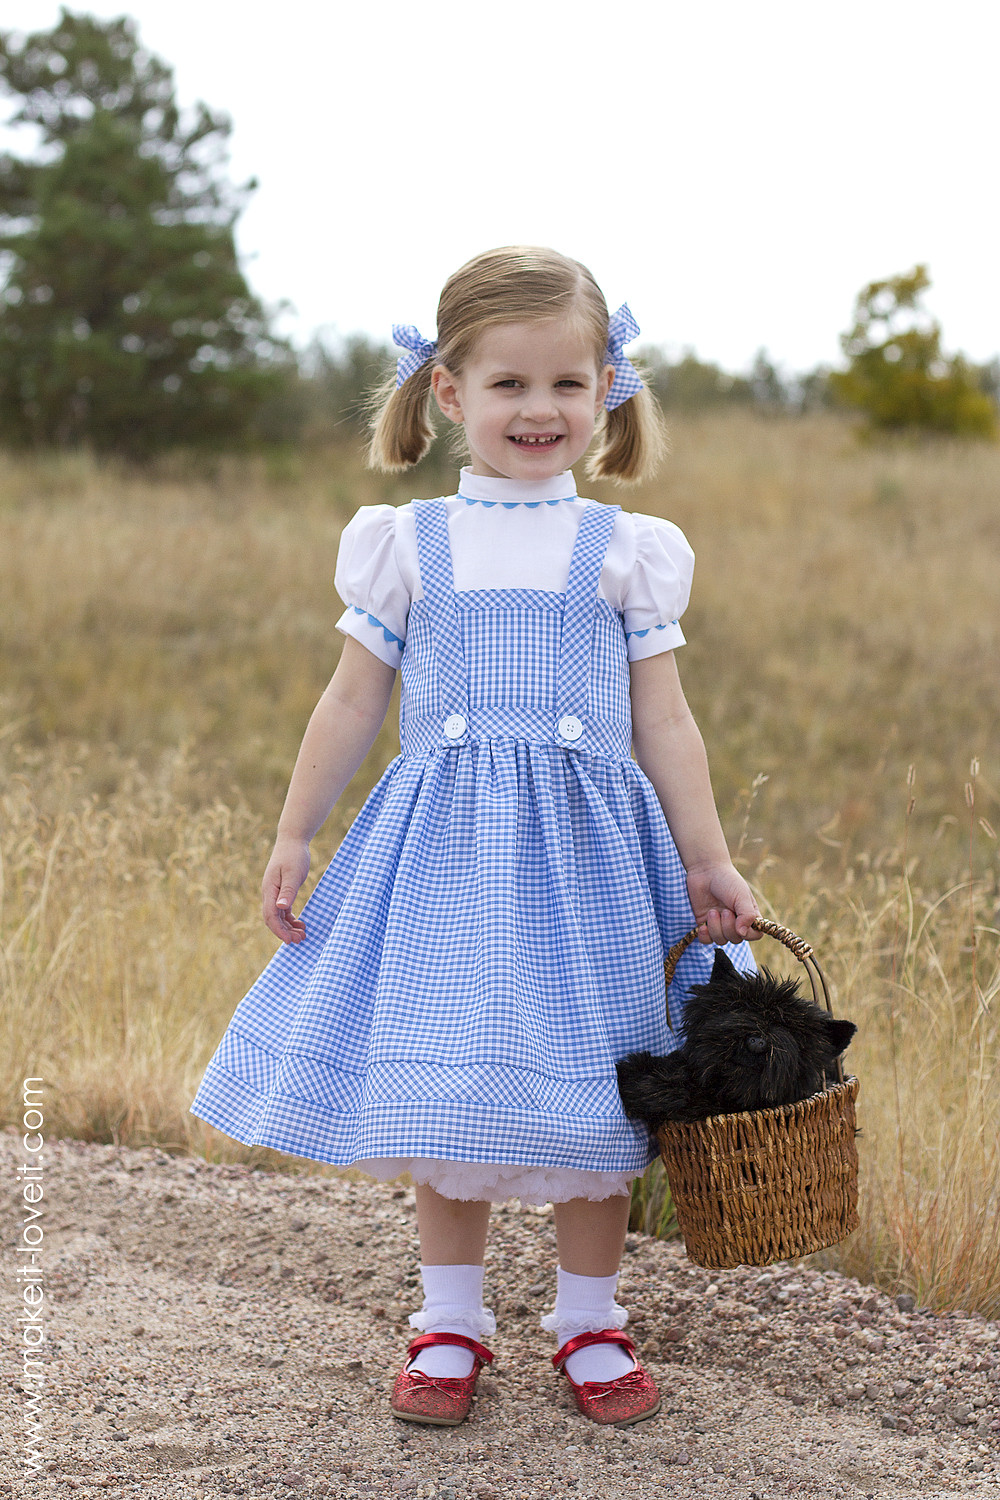 Best ideas about Dorothy Costume DIY . Save or Pin A HOOP SKIRT a sturdy and inexpensive version Now.